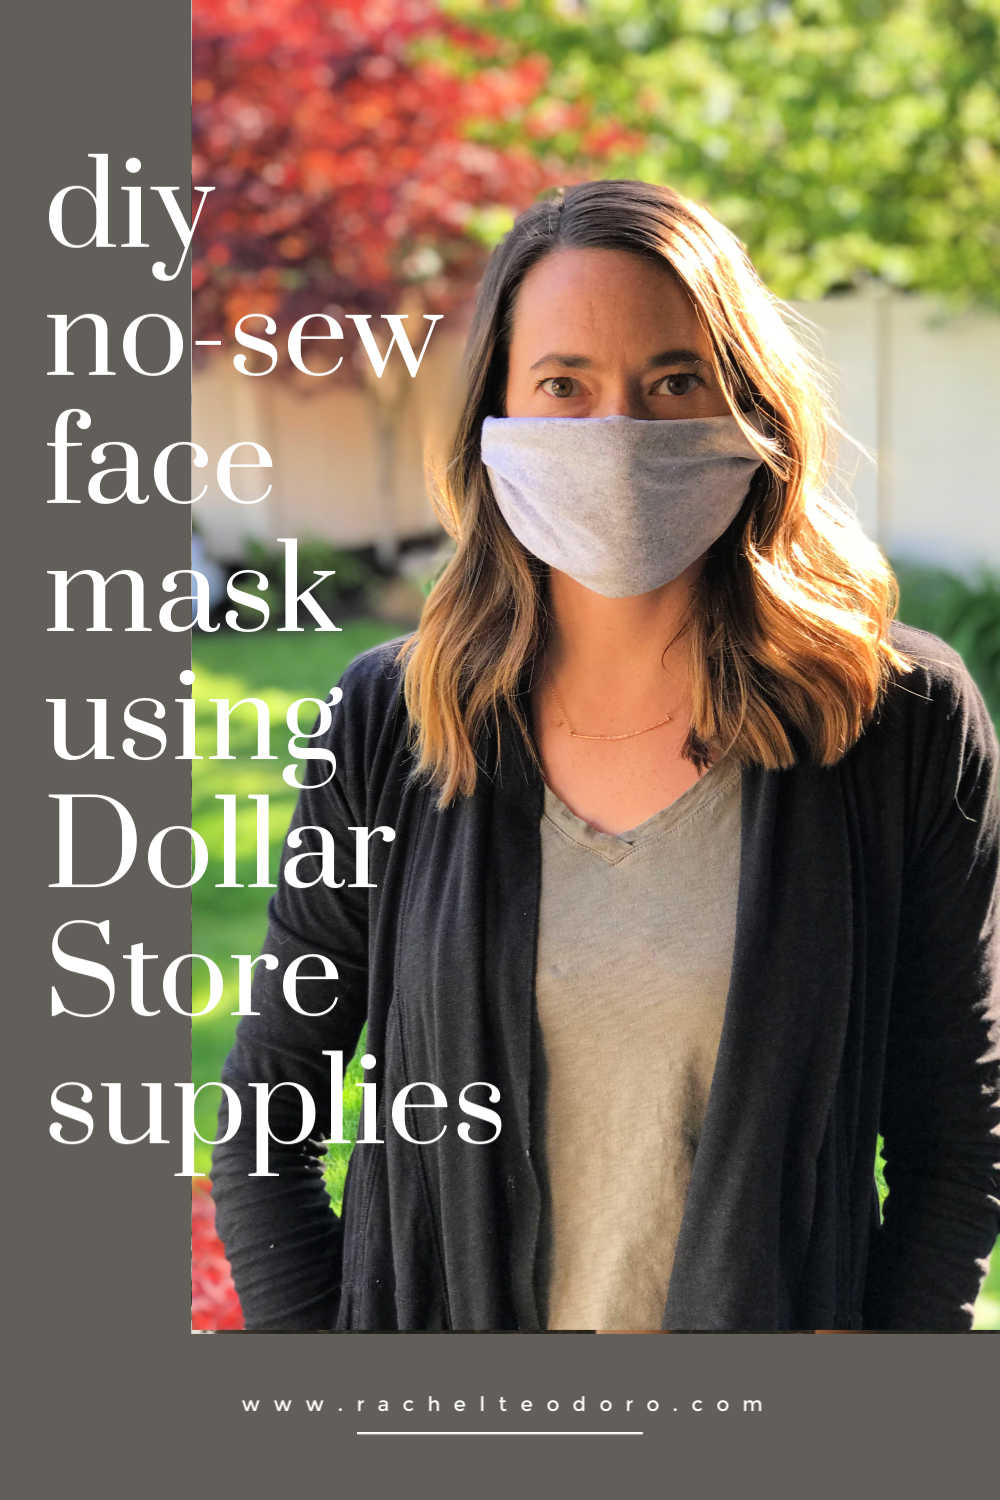 no sew face mask using dollar store supplies